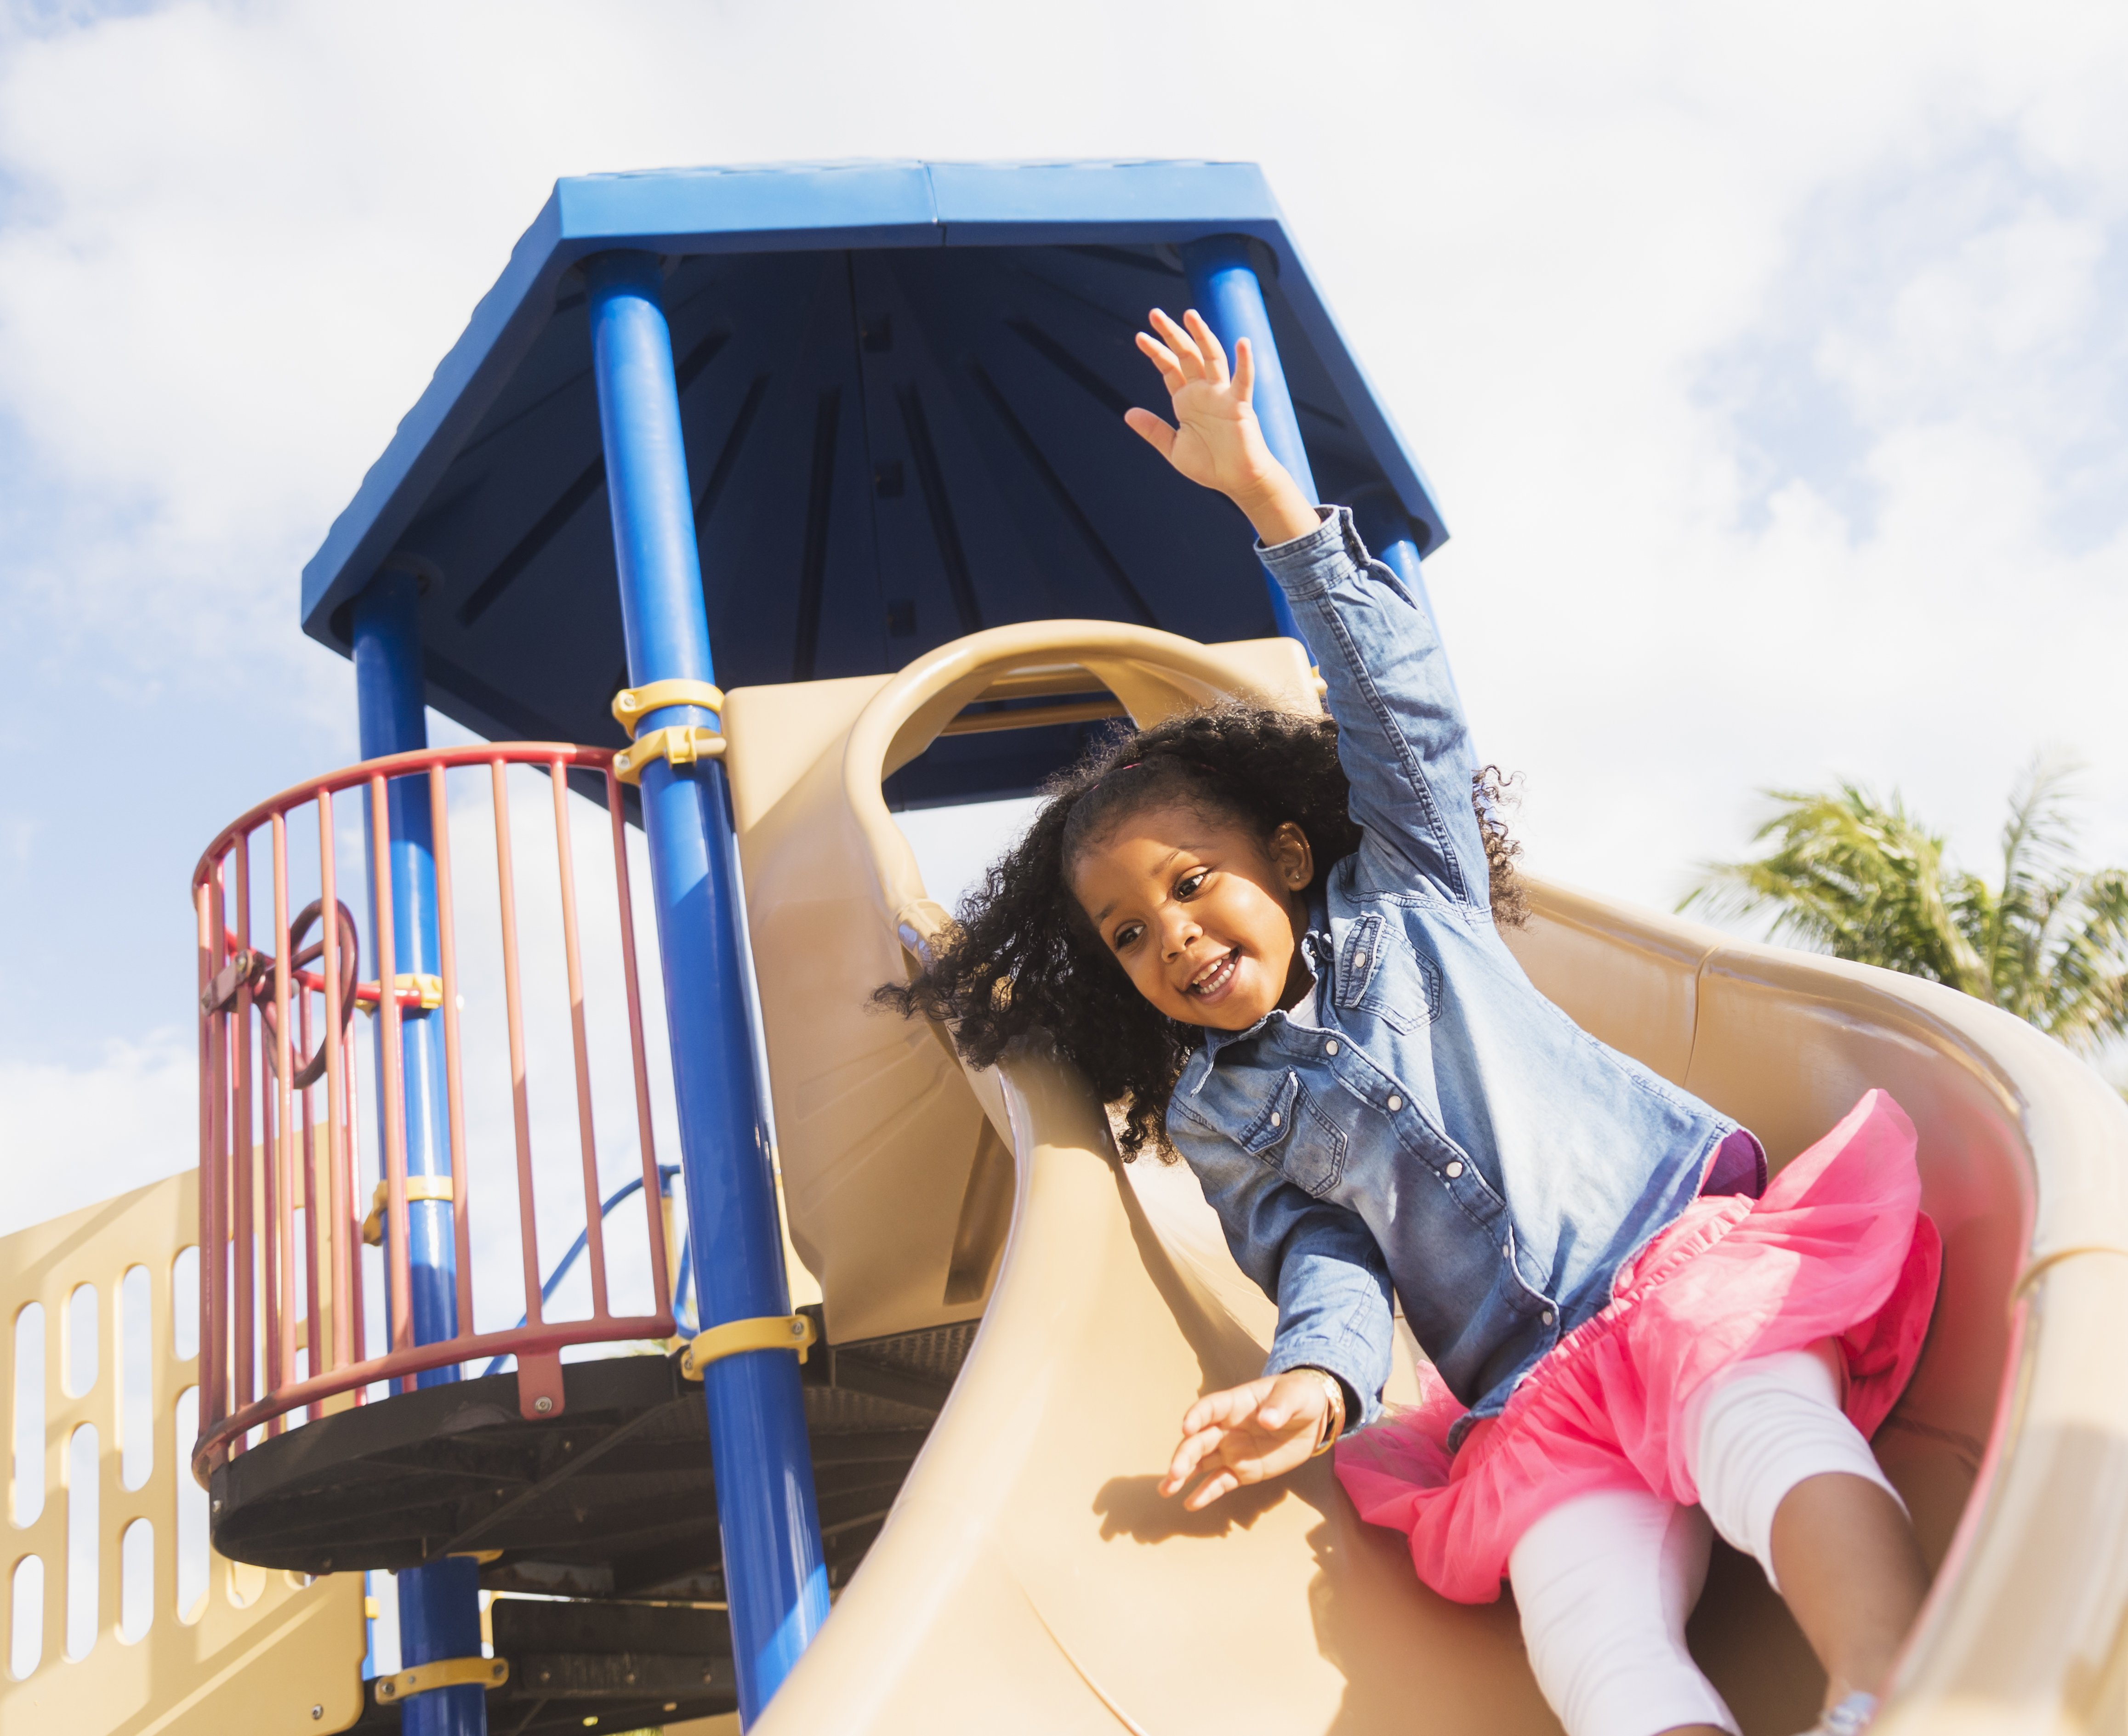 A young adorable girl playing at a playground.   Photo: Getty Images